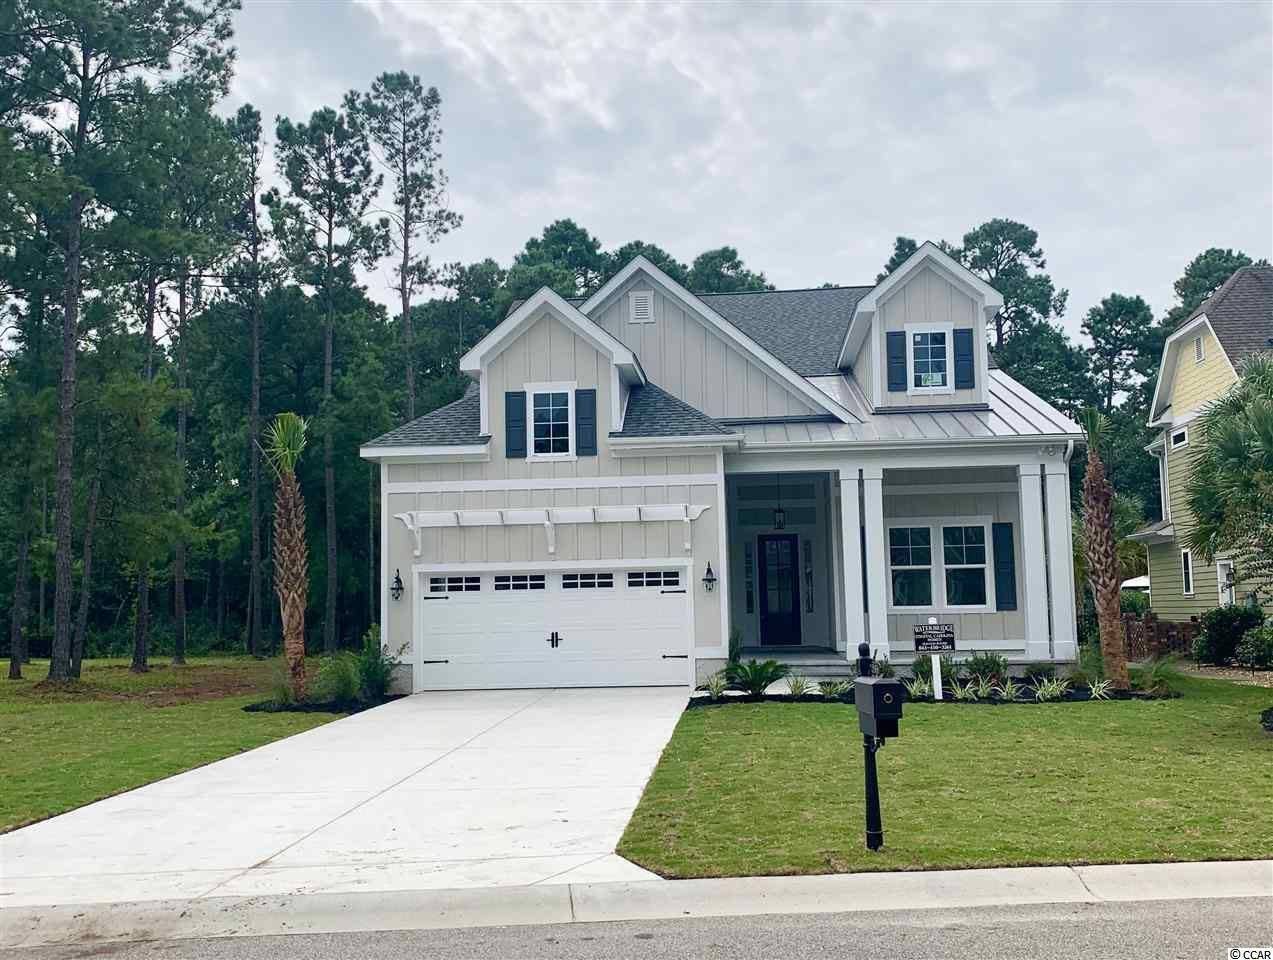 """New coastal cottage, one story home in the desirable, gated Waterbridge community and will be ready around September 15, 2020. This custom built home boasts extraordinary finishes and workmanship and is being built by a Waterbridge """"preferred builder"""". The home features 4 bedrooms, 3 full baths, eat-in-kitchen with upgraded 42 inch cabinets, granite counter tops and stainless appliances. The single story plan also boasts an open floor plan with a large great room including custom coffer ceiling, and a fireplace.The spacious master suite focuses on the presidential ceiling, a master bath with double vanity, and his and her walk-in closets. There is a flex room which could be used as an office, sitting room or another bedroom. There are two additional oversized bedrooms all on one level. The community offers a beautiful clubhouse, Resort-Style Swimming Pool,Fire Pit, Fitness Center, Volleyball, Tennis Courts, Basketball, 60 plus acre Lake, Boat Storage and Community Boat Launch. All of this and still close to the beach, convenient to shopping and restaurants. The custom home builder has been building homes for over 30 years. The home is under construction and will ready to move in around September 15, 2020."""